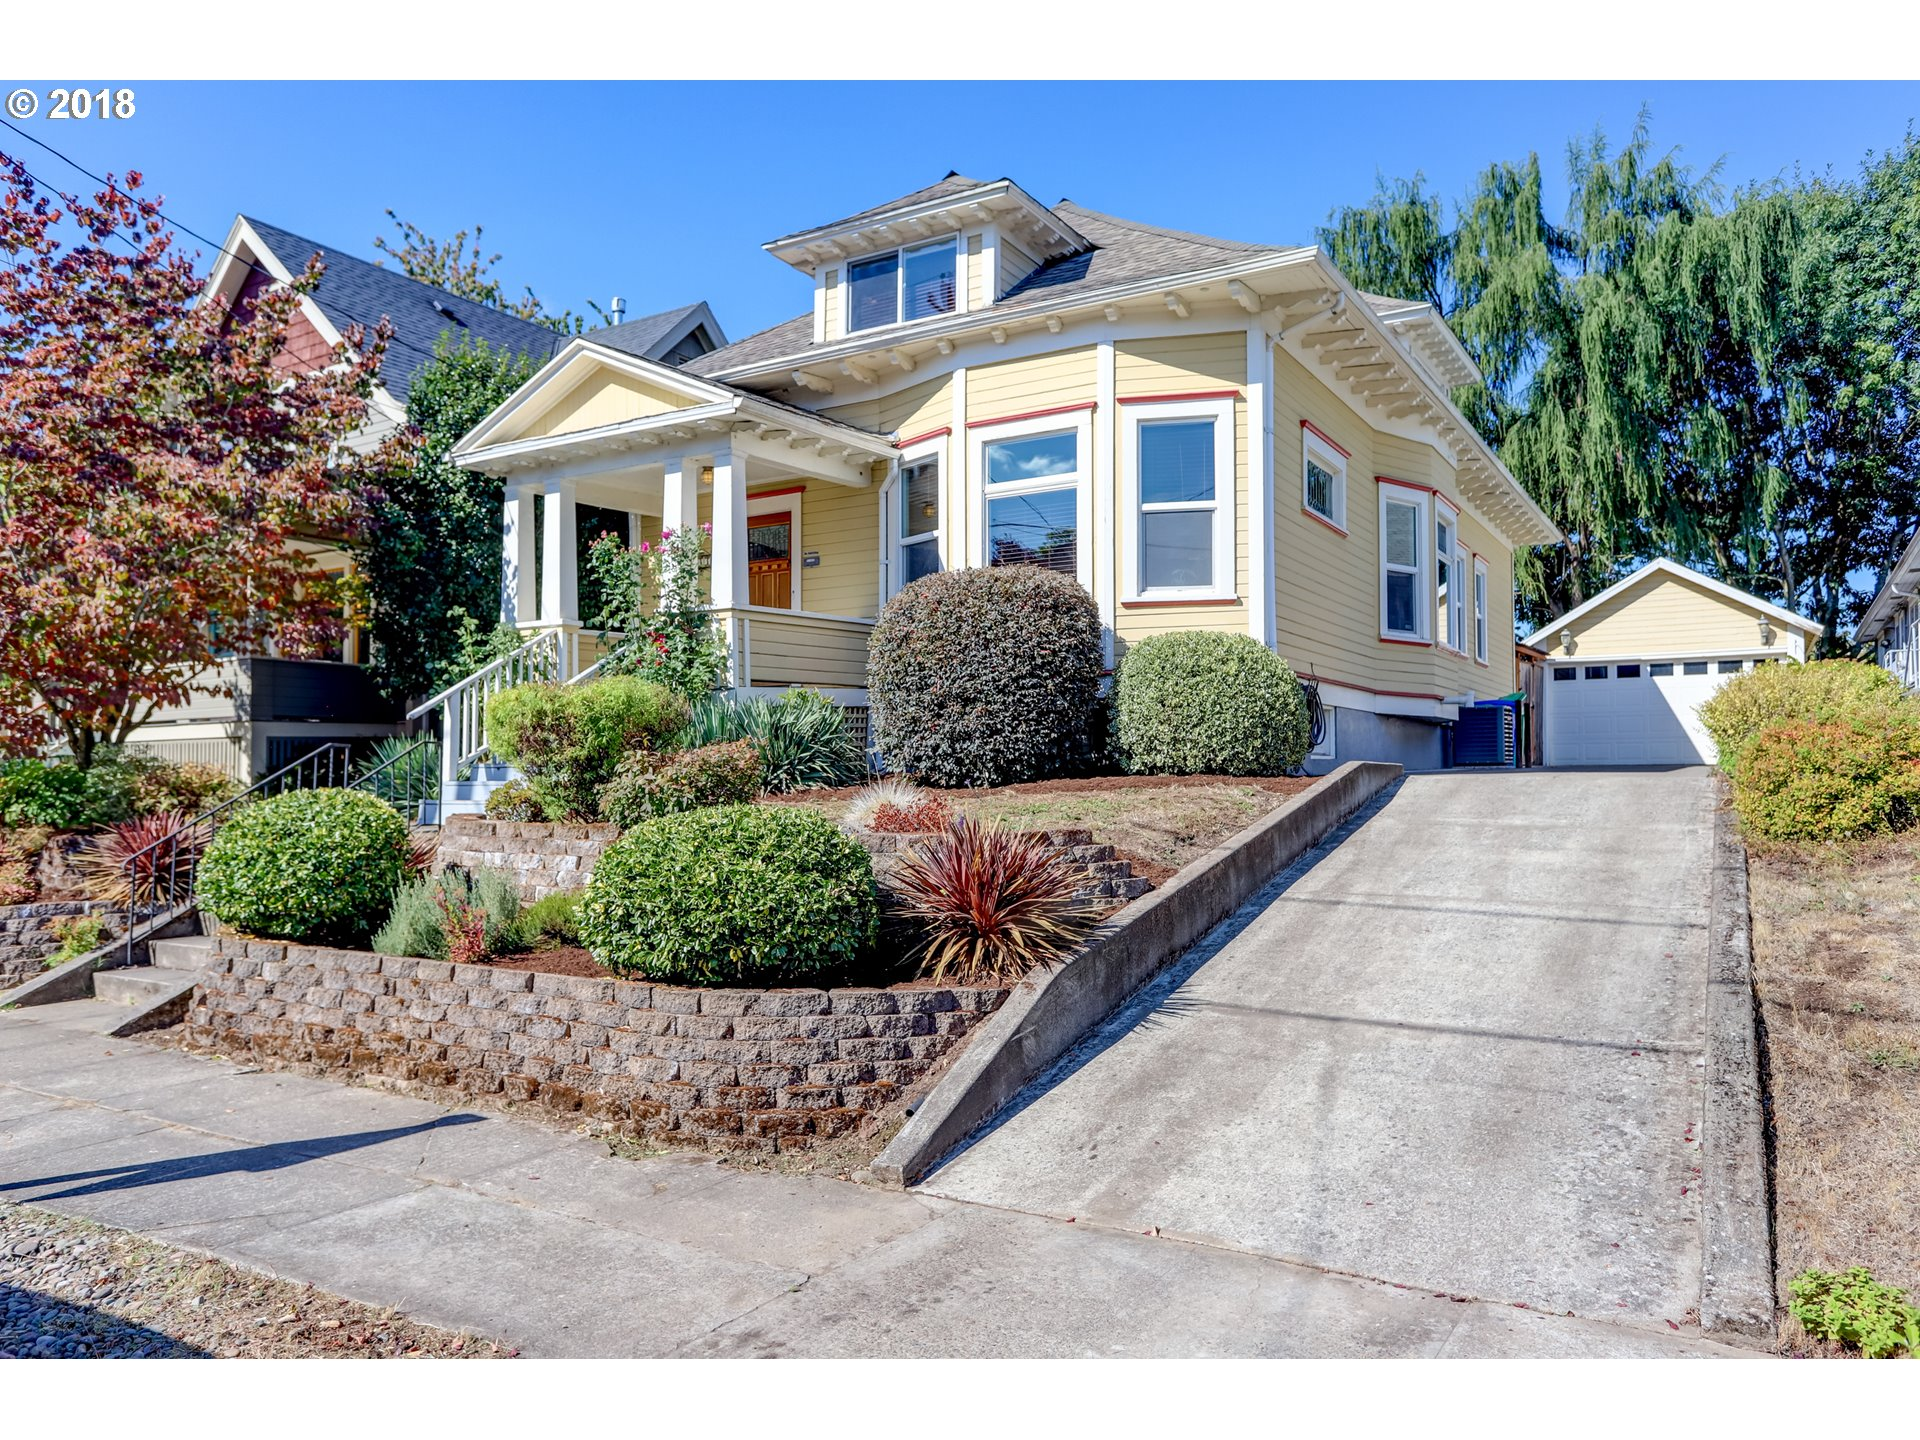 Stunning 1910 traditional craftsman in NE Portland. Irving Park is just up the street! Naturally lit throughout with updated windows and skylights. Vaulted ceilings and spacious bedrooms and large master bedroom/bathroom. Manicured backyard featuring water fountain & fire-pit. Enough space for a growing family, potential ADU in basement. Must See!